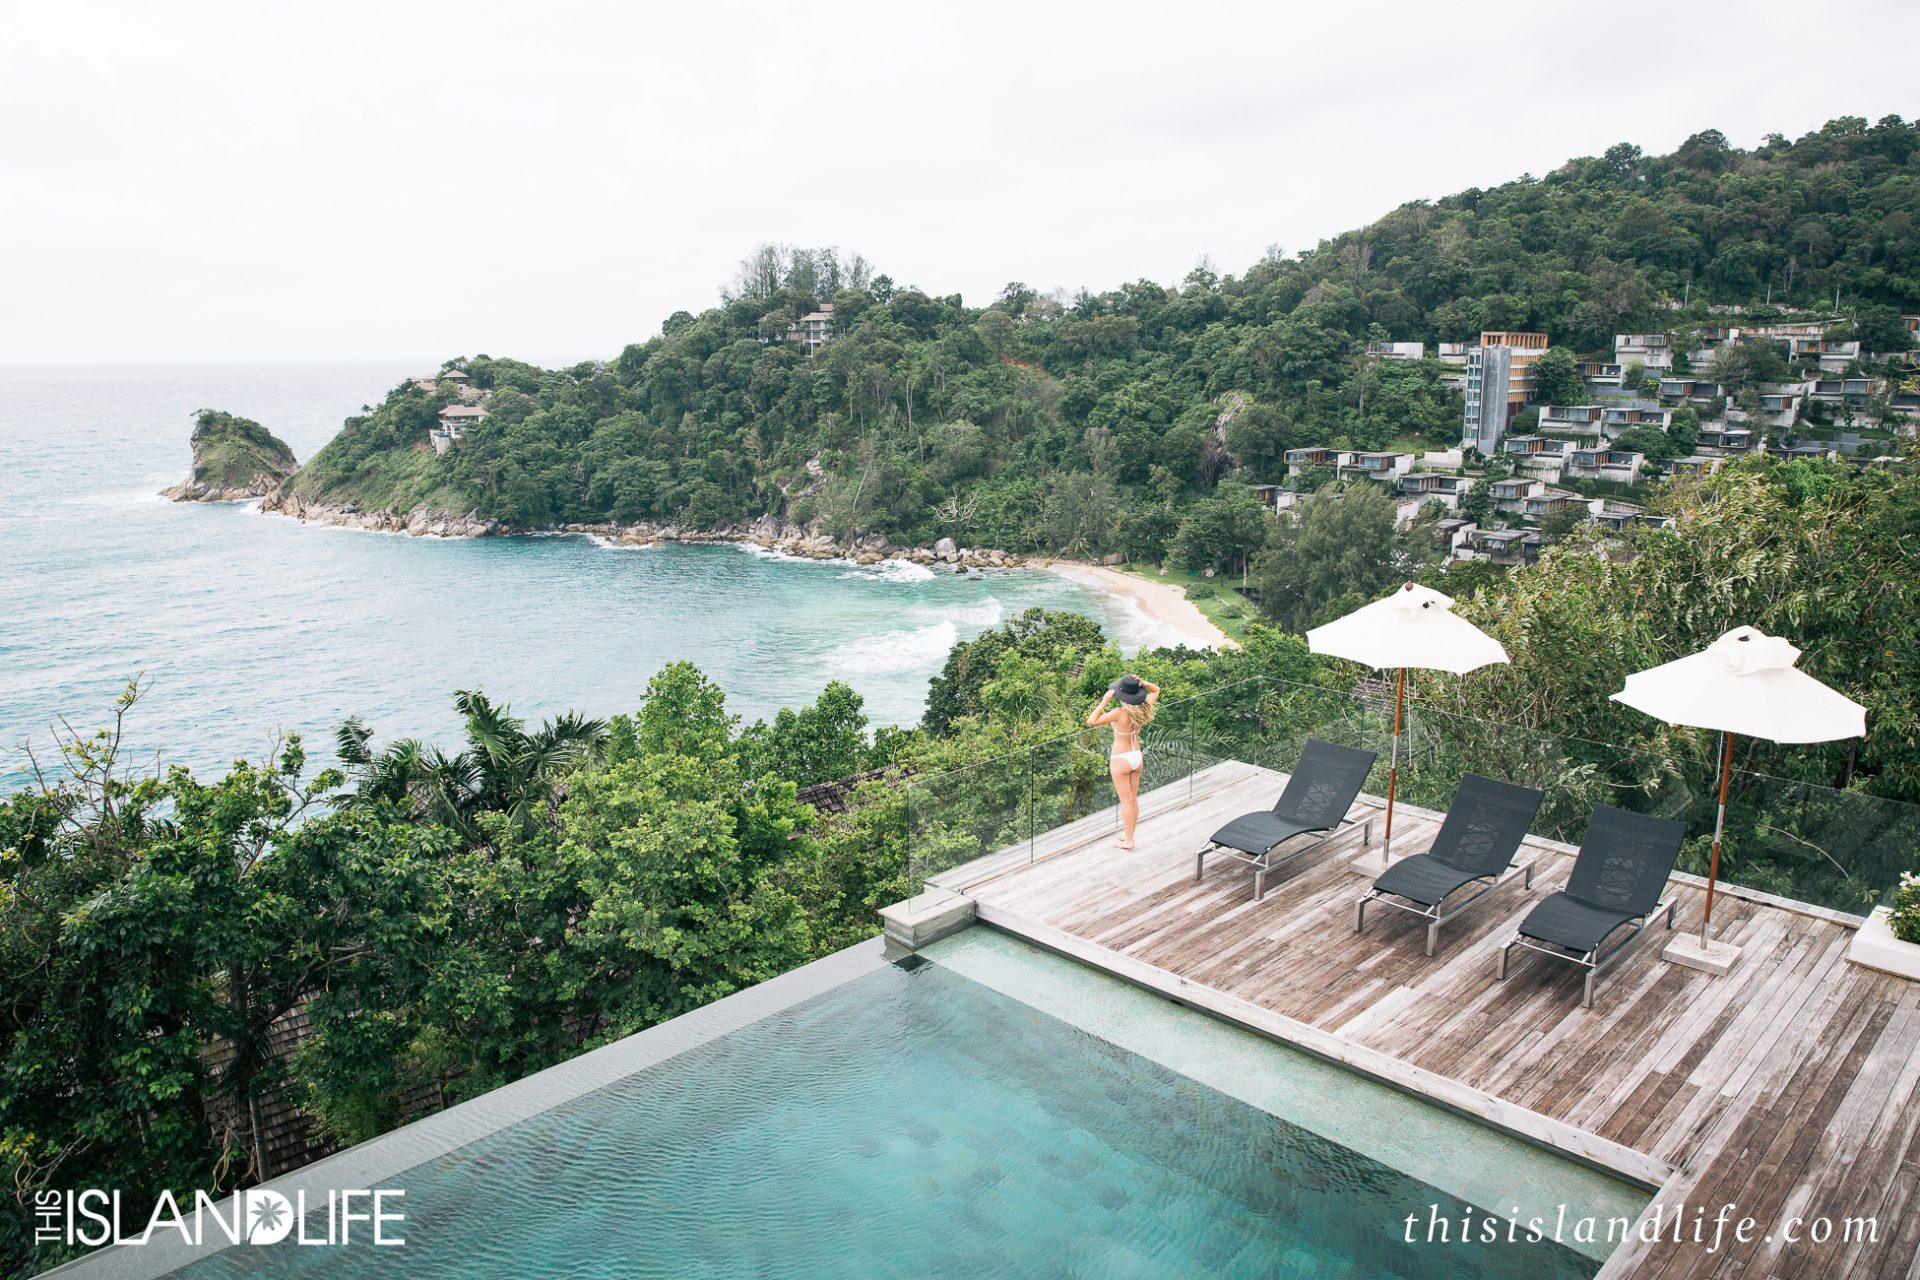 This Island Life | One luxurious week on the island of Phuket with Villa Getaways